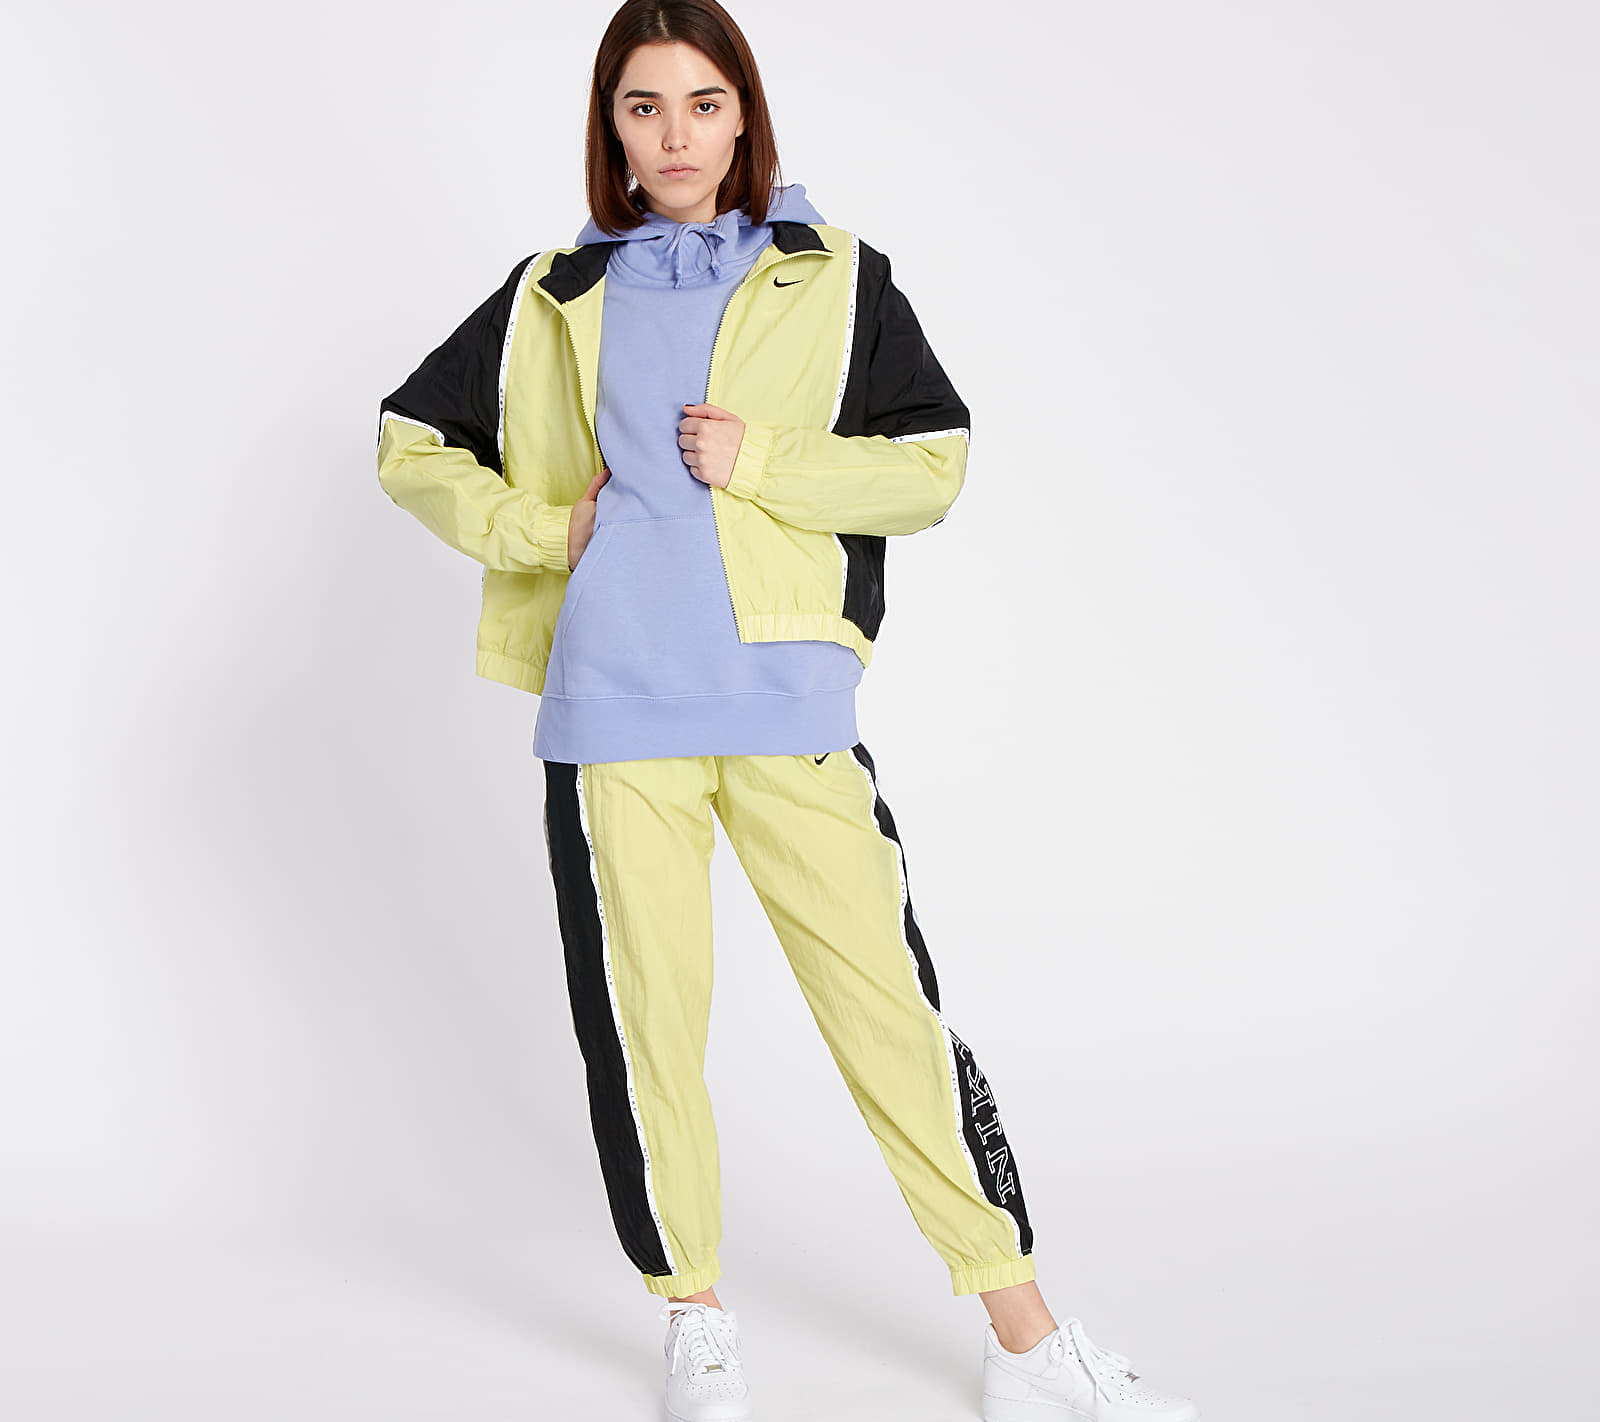 Nike Sportswear Woven Piping Jacket Limelight/ Black/ Black, Yellow